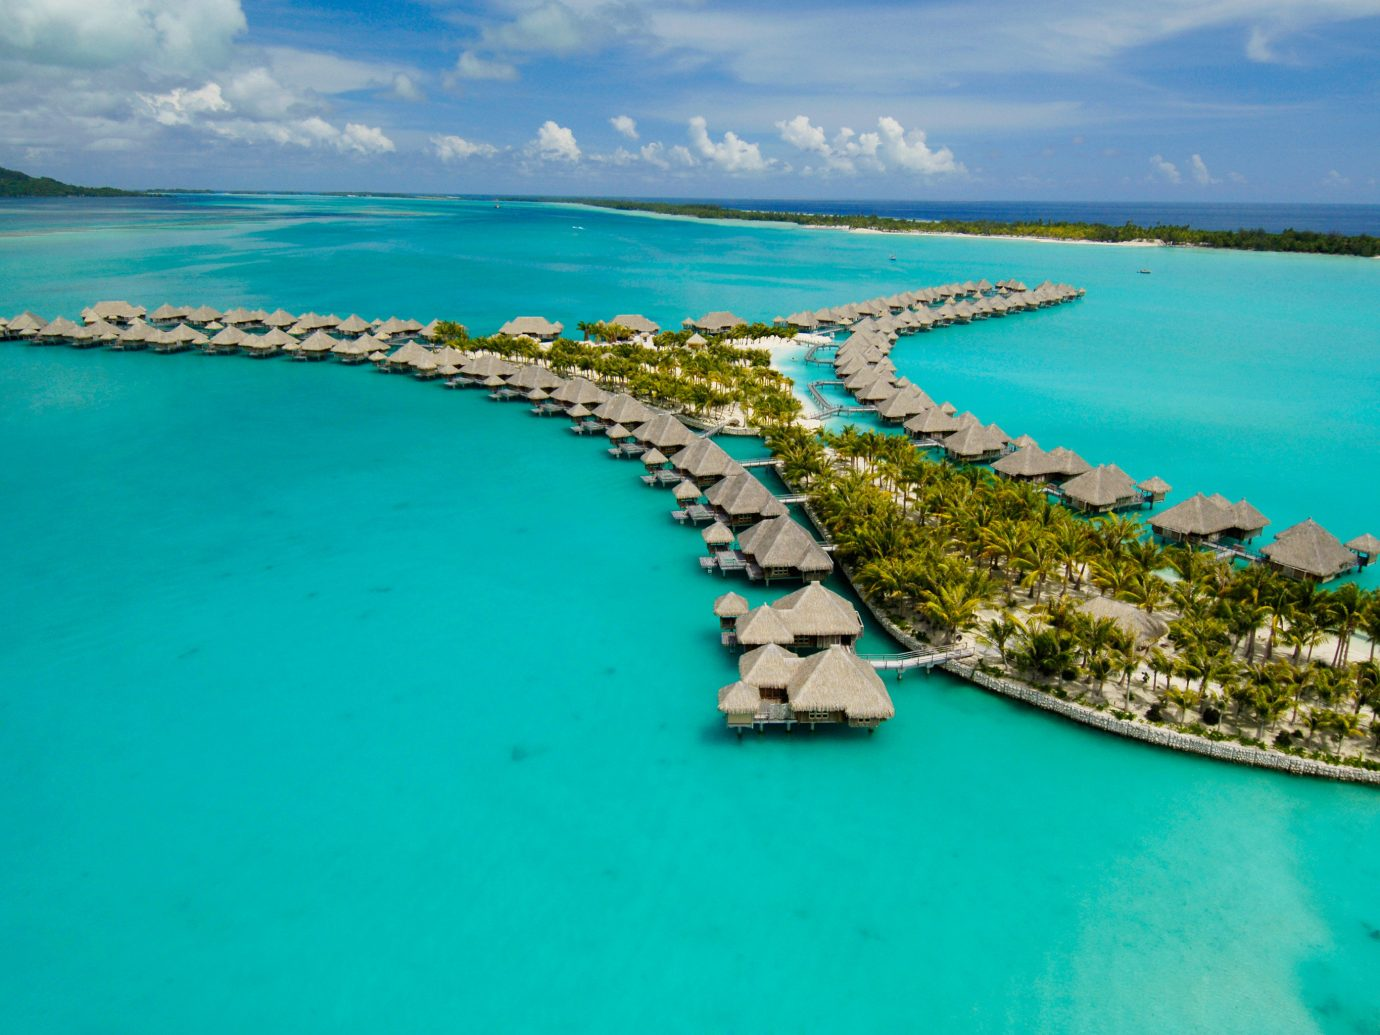 All-Inclusive Resorts Beach Boutique Hotels Hotels Island Overwater Bungalow Romance Scenic views Tropical water sky outdoor archipelago geographical feature Boat landform Ocean Sea caribbean Nature reef Coast islet bay vacation Lagoon aerial photography atoll cape inlet cay cove blue swimming shore